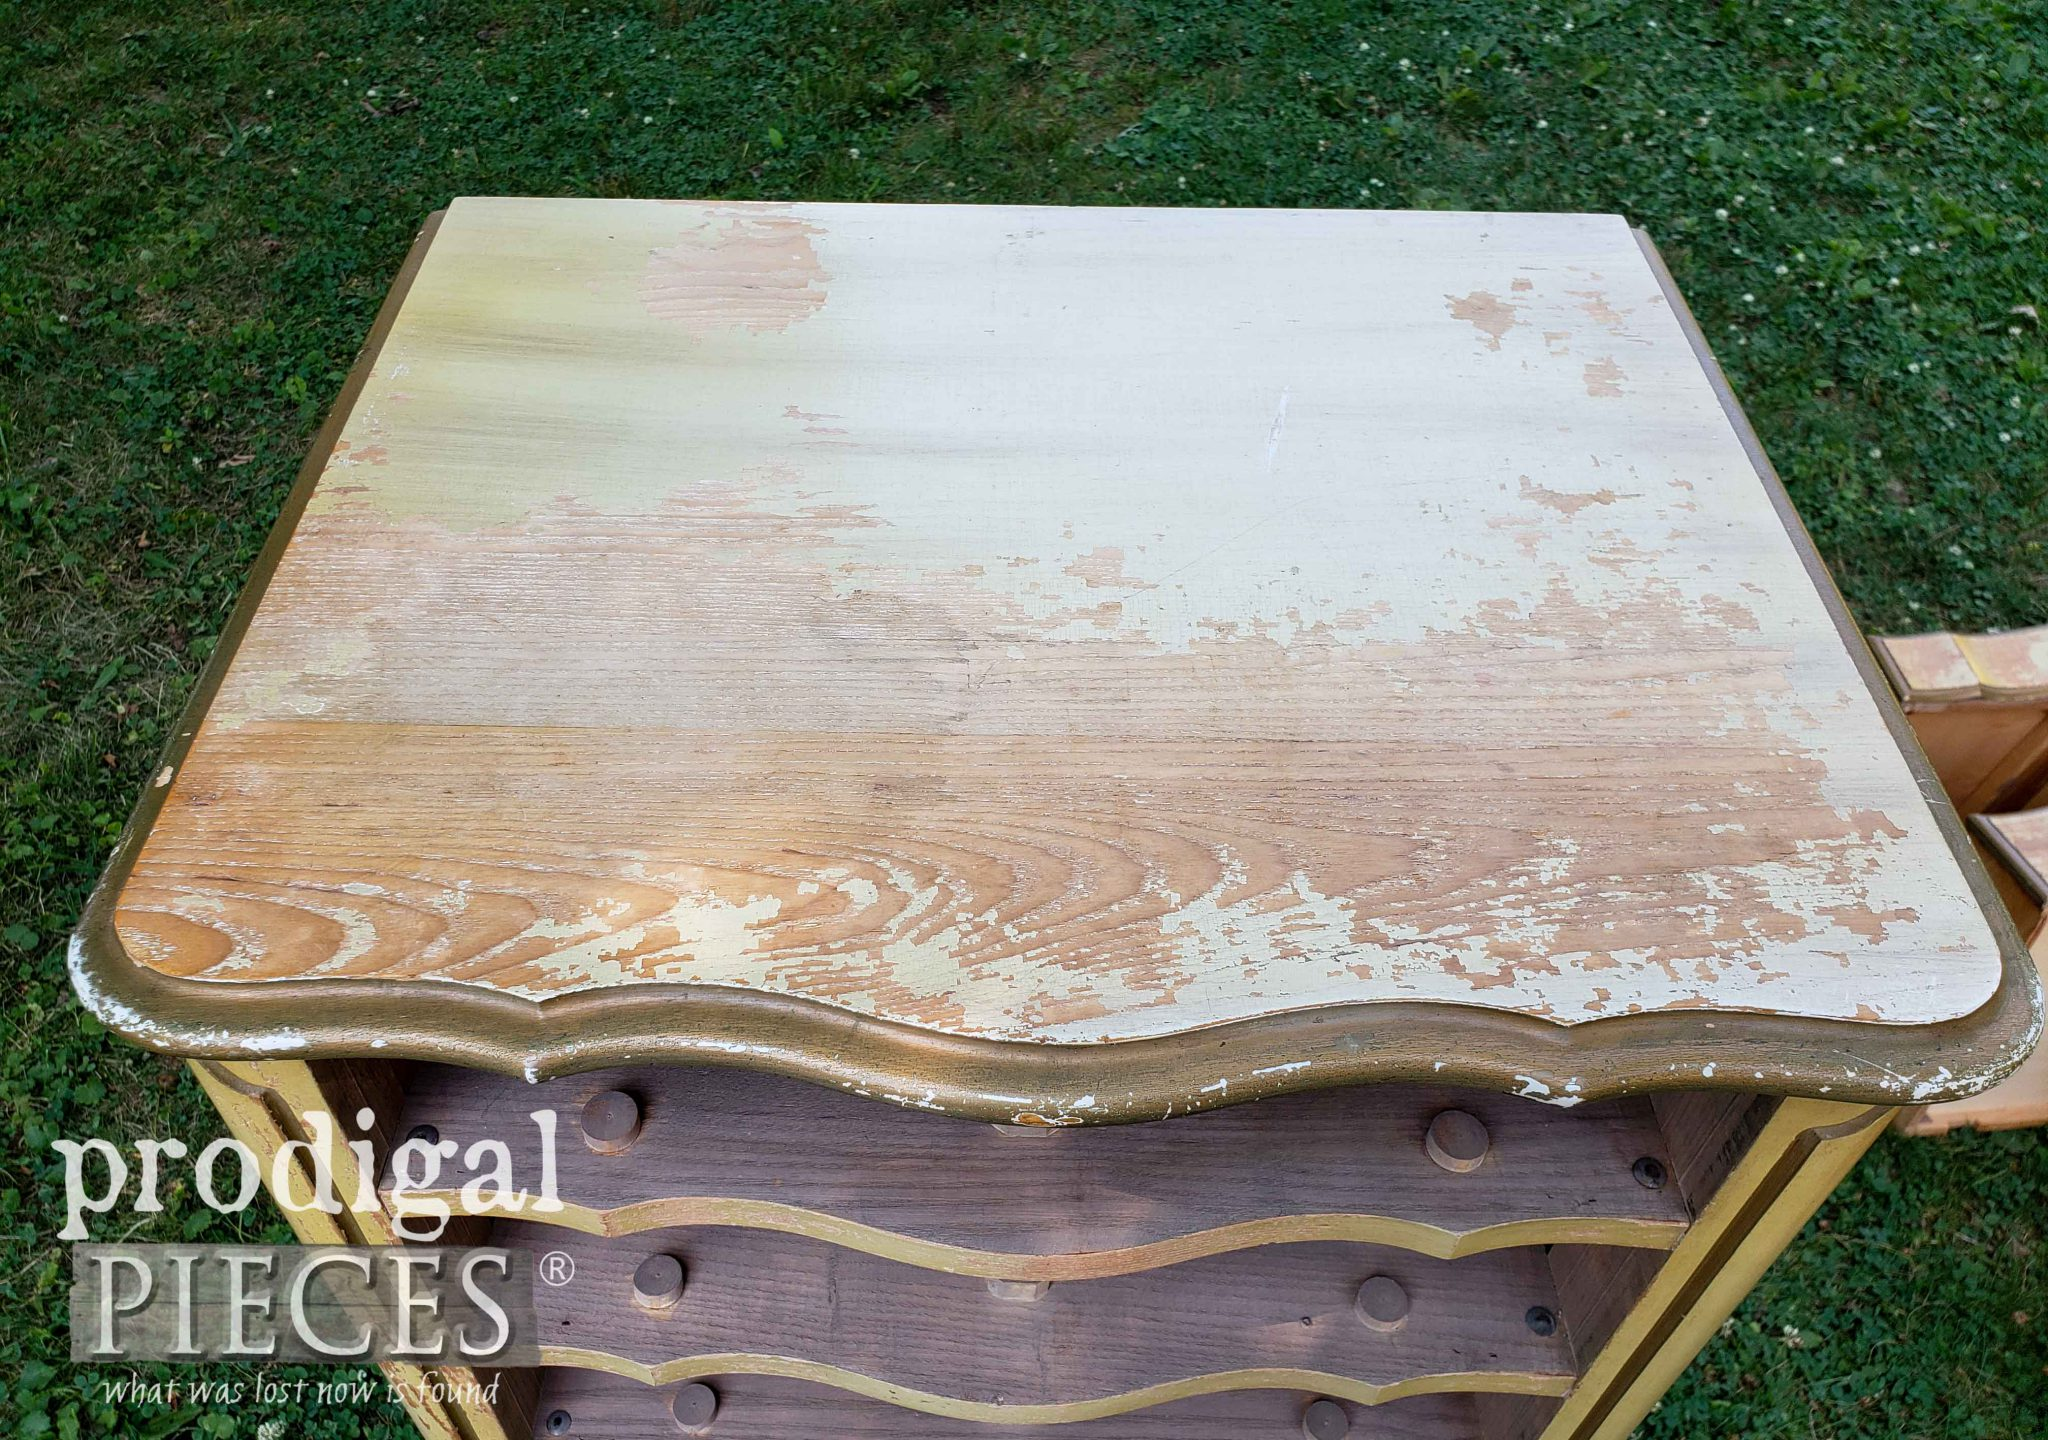 Worn Vintage Lingerie Chest Top Before Makeover by Prodigal Pieces | prodigalpieces.com #prodigalpieces #furniture #vintage #home #french #homedecor #diy